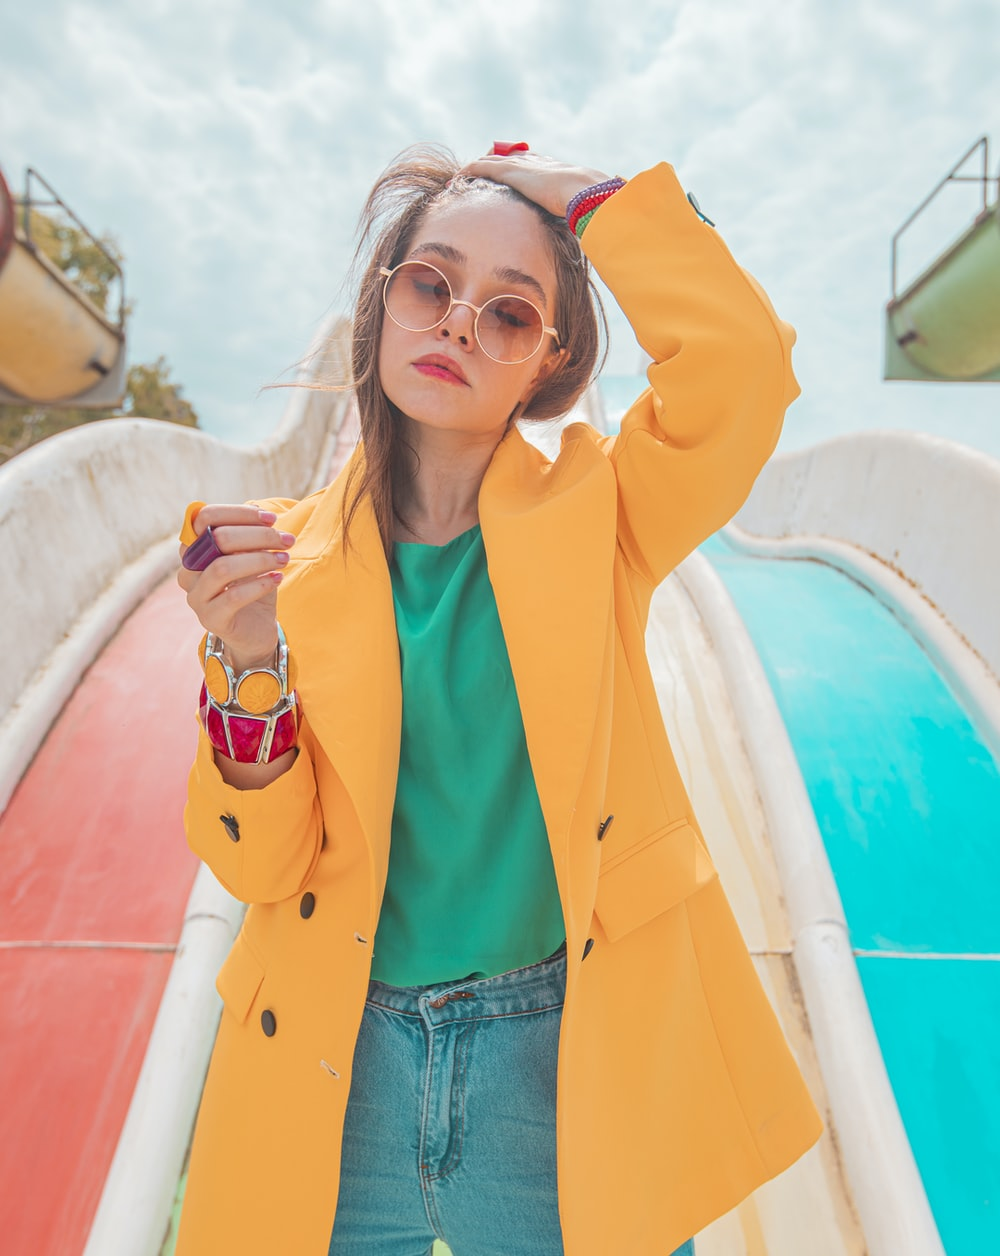 woman in yellow jacket and blue denim shorts holding white and red ceramic mug